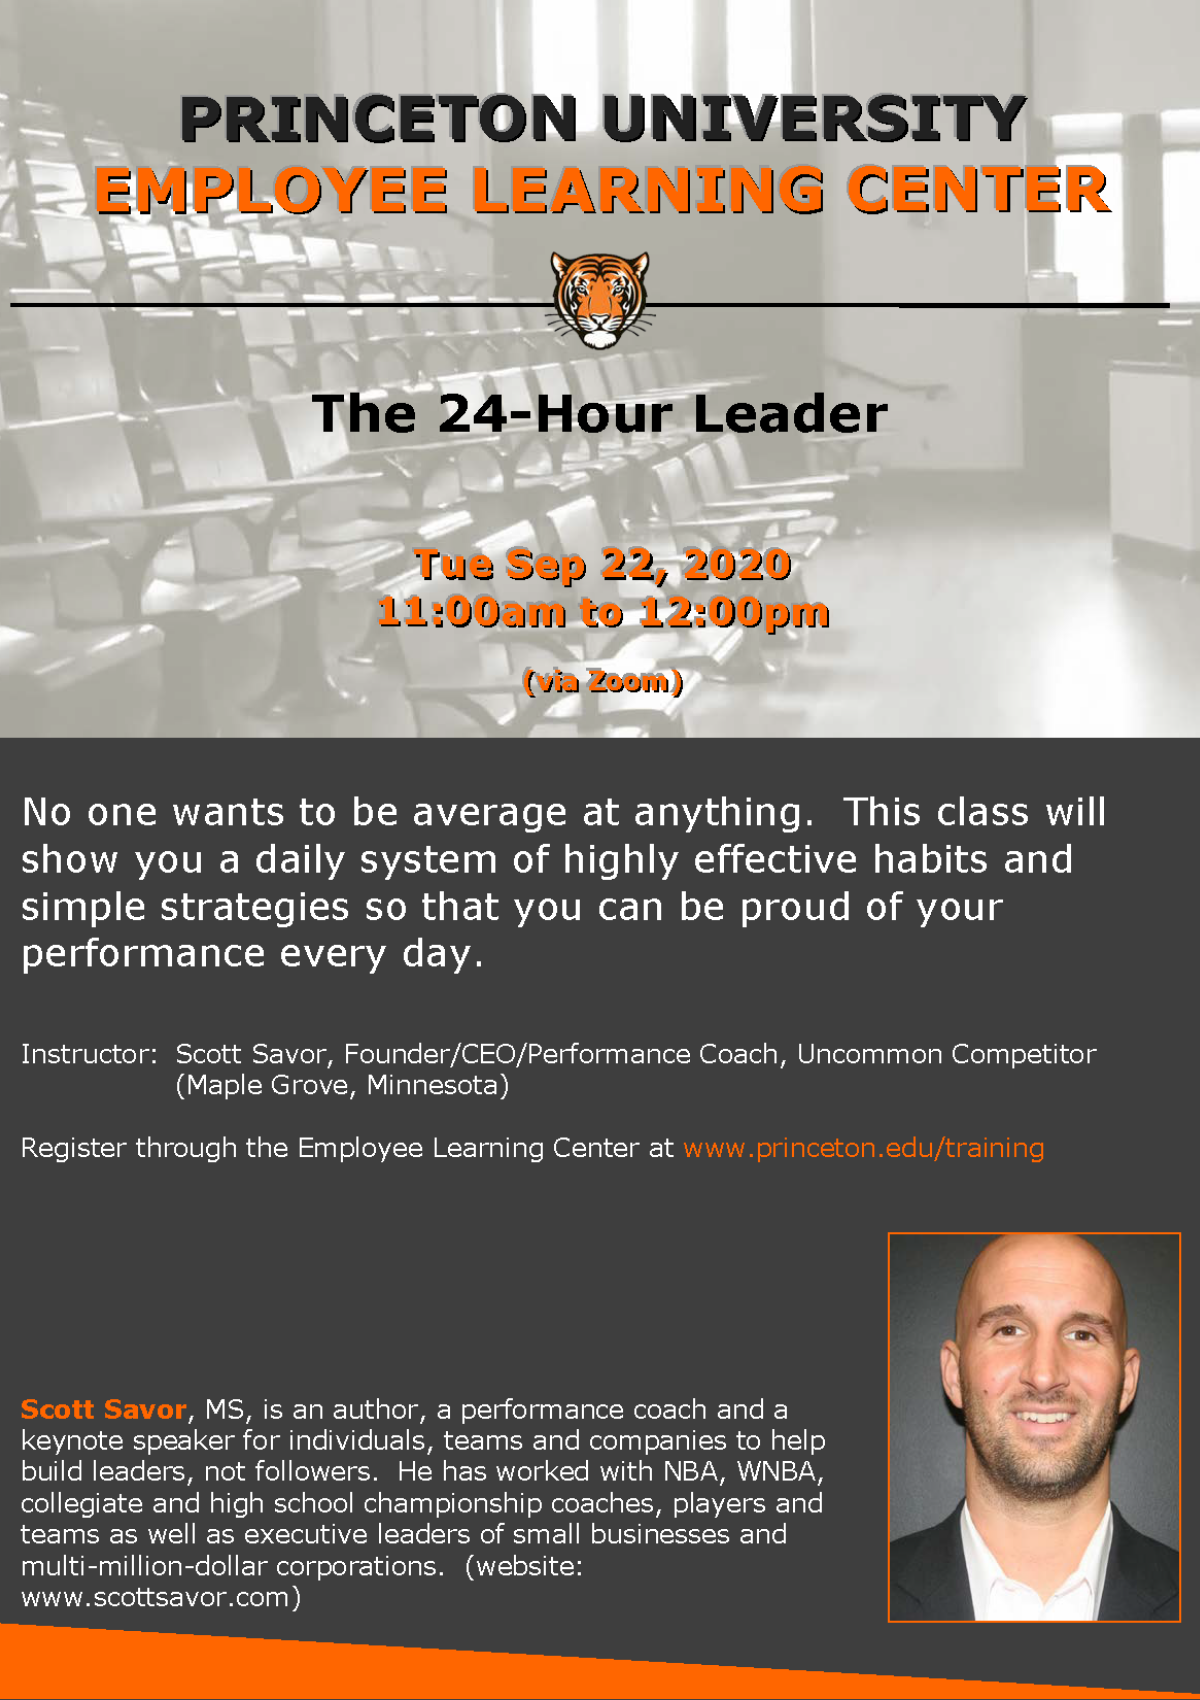 Employee Learning Center: The 24-Hour Leader Tuesday Sep 22, 2020 11am-12pm via Zoom